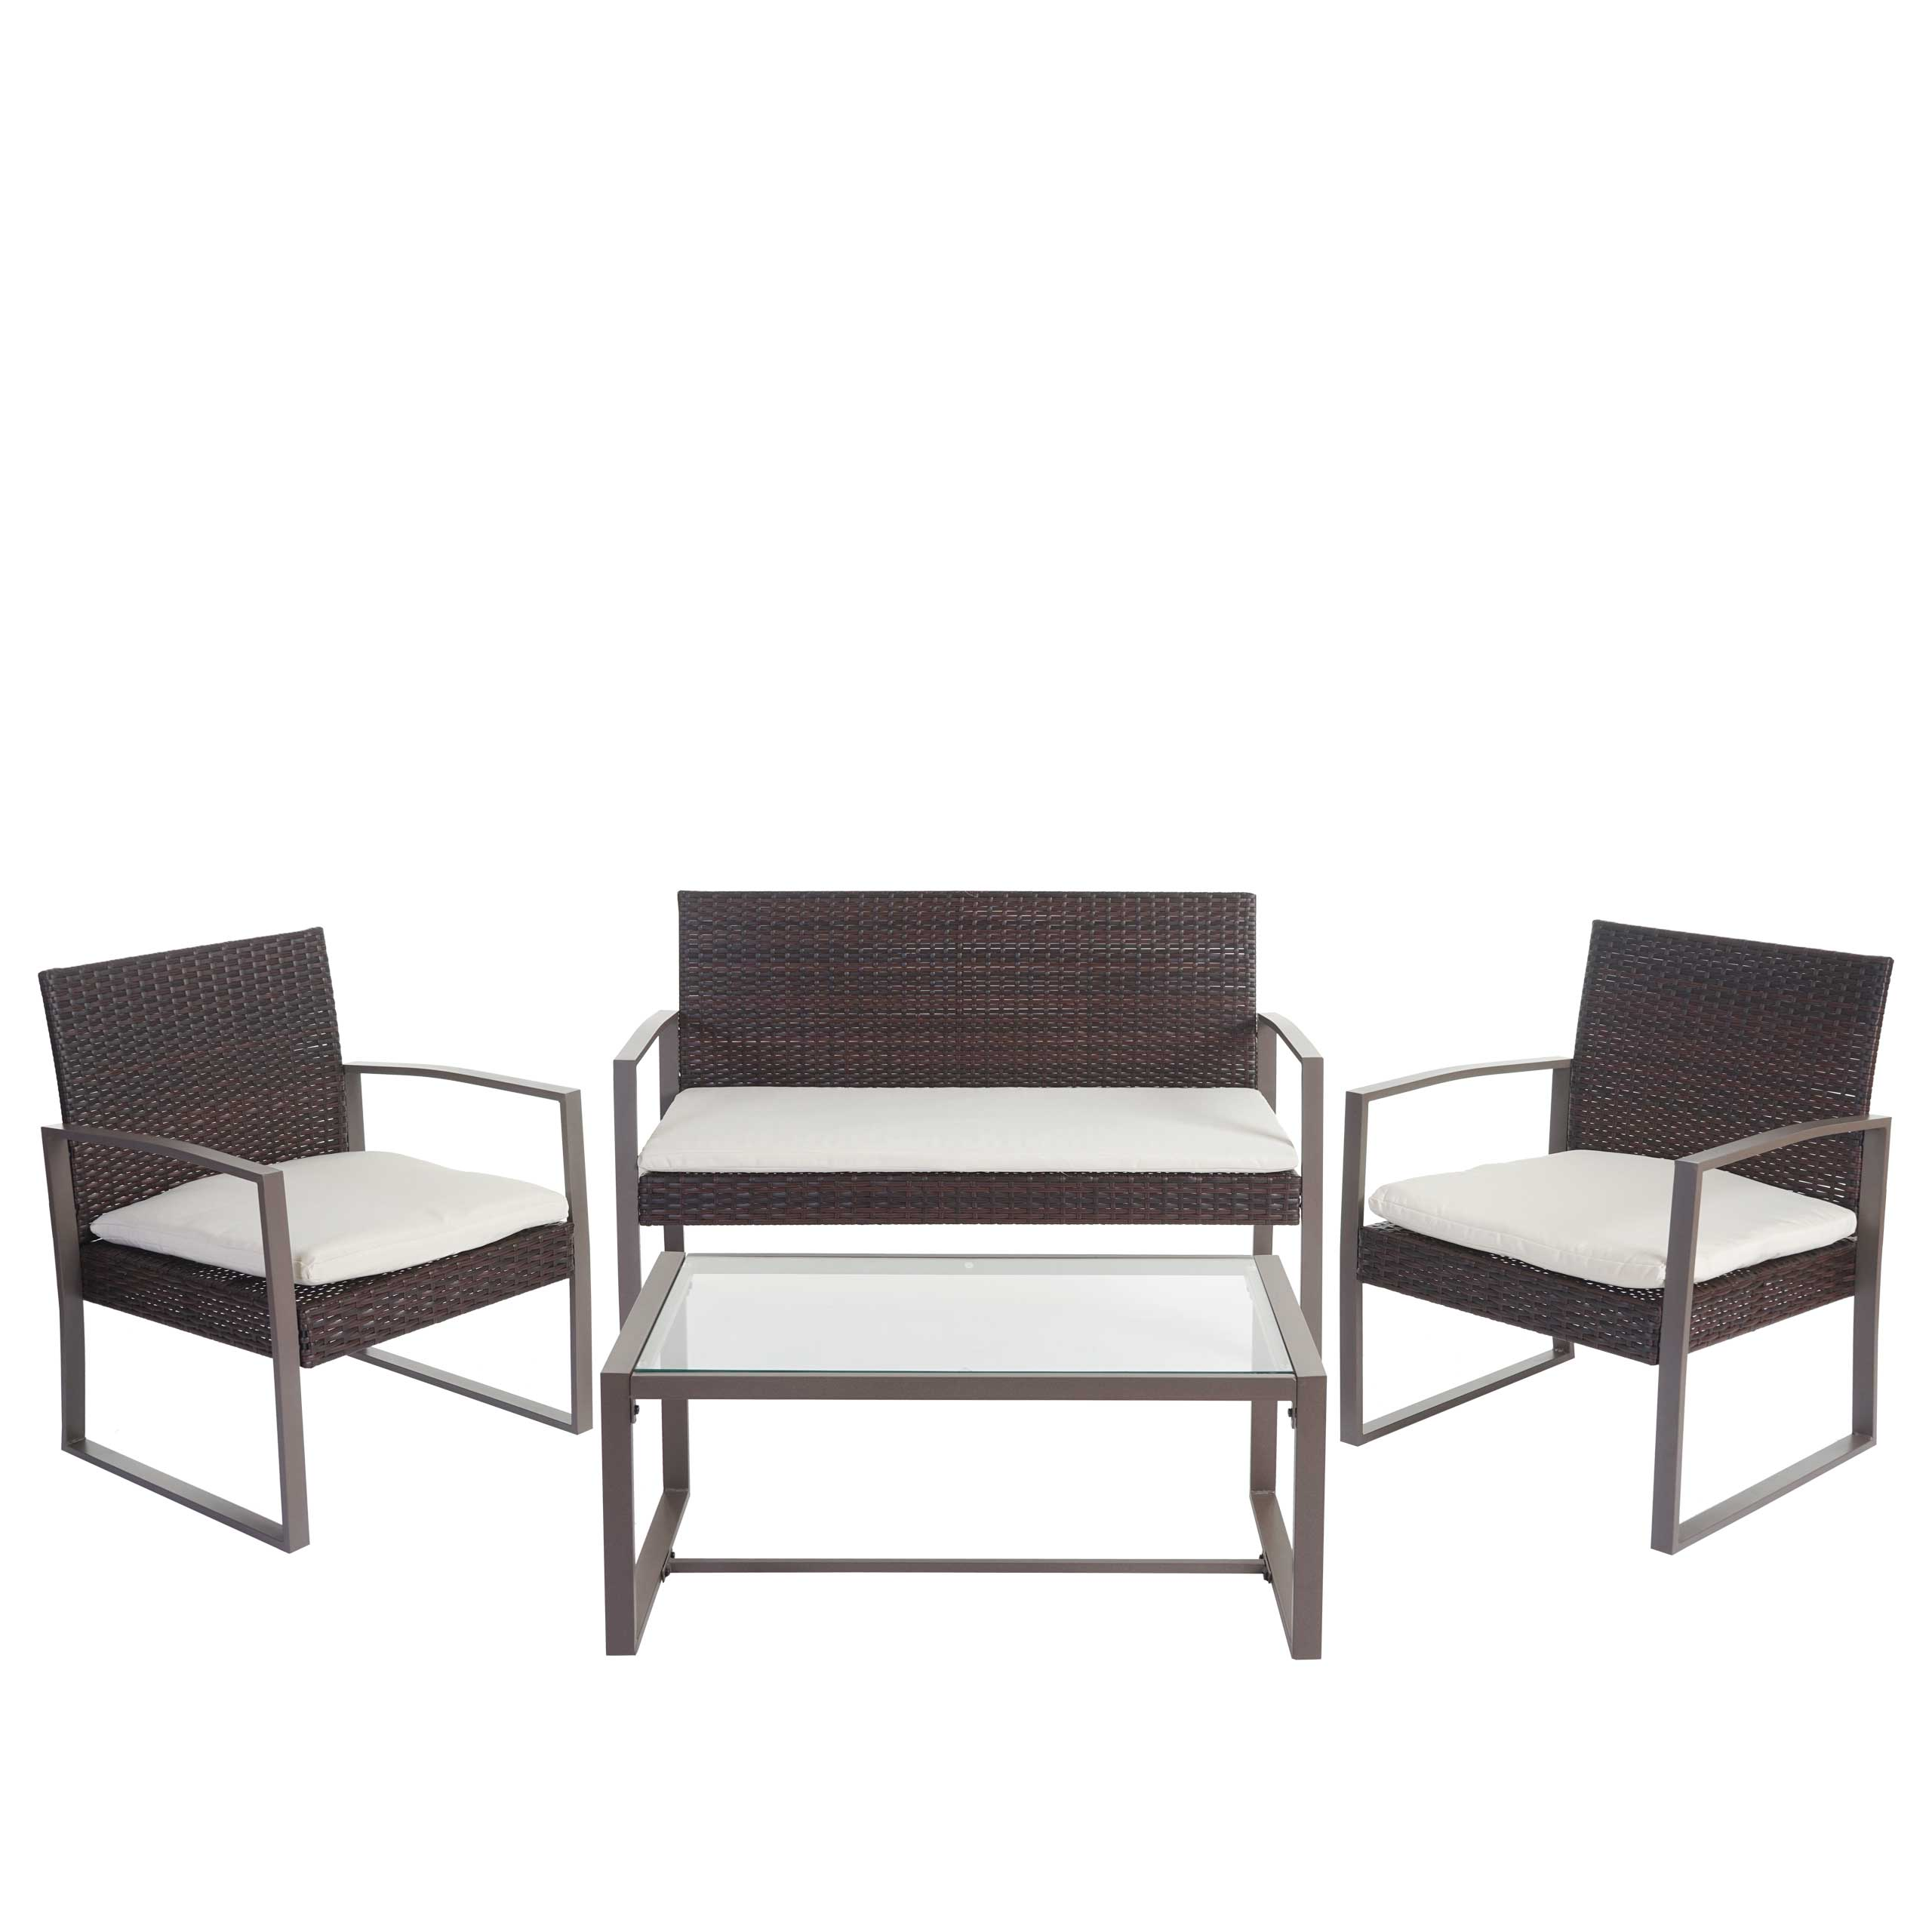 2 1 1 poly rattan garten garnitur parga mit 3 kissen braun sitzgruppe ebay. Black Bedroom Furniture Sets. Home Design Ideas